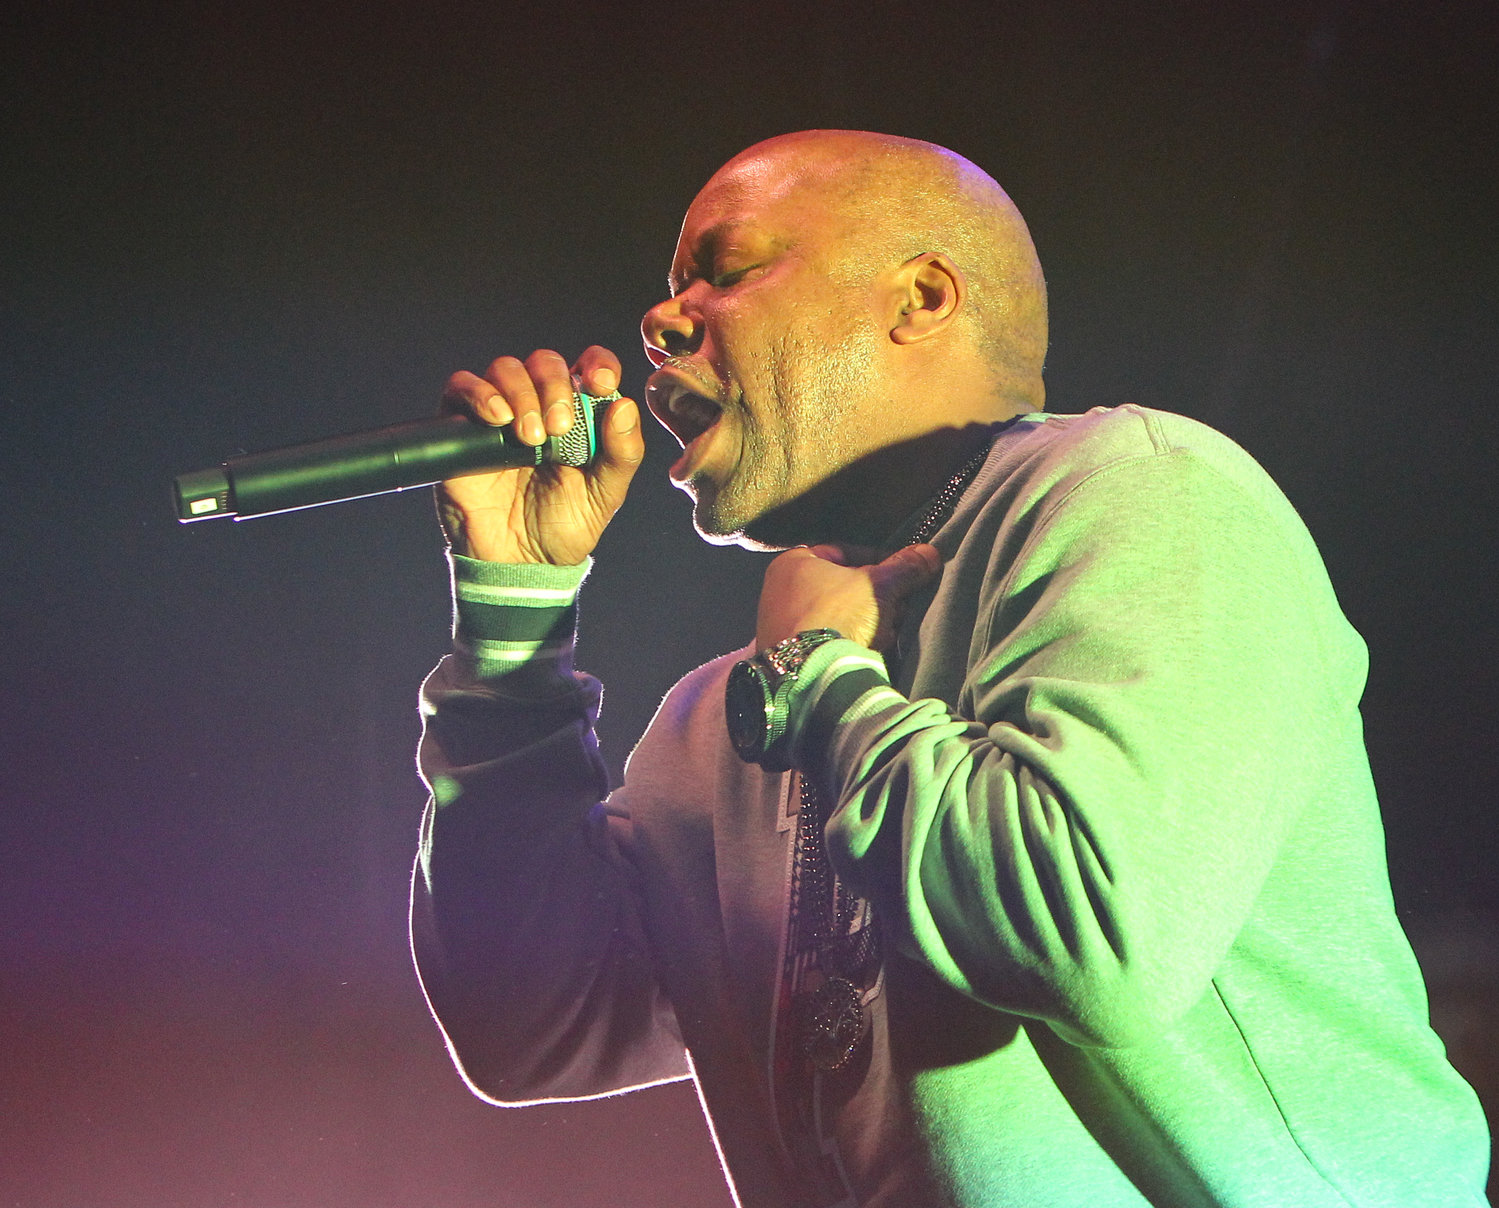 Too Short performs on the Puff Puff Pass tour on Sunday, Dec. 2, 2018 in Round Rock, TX.